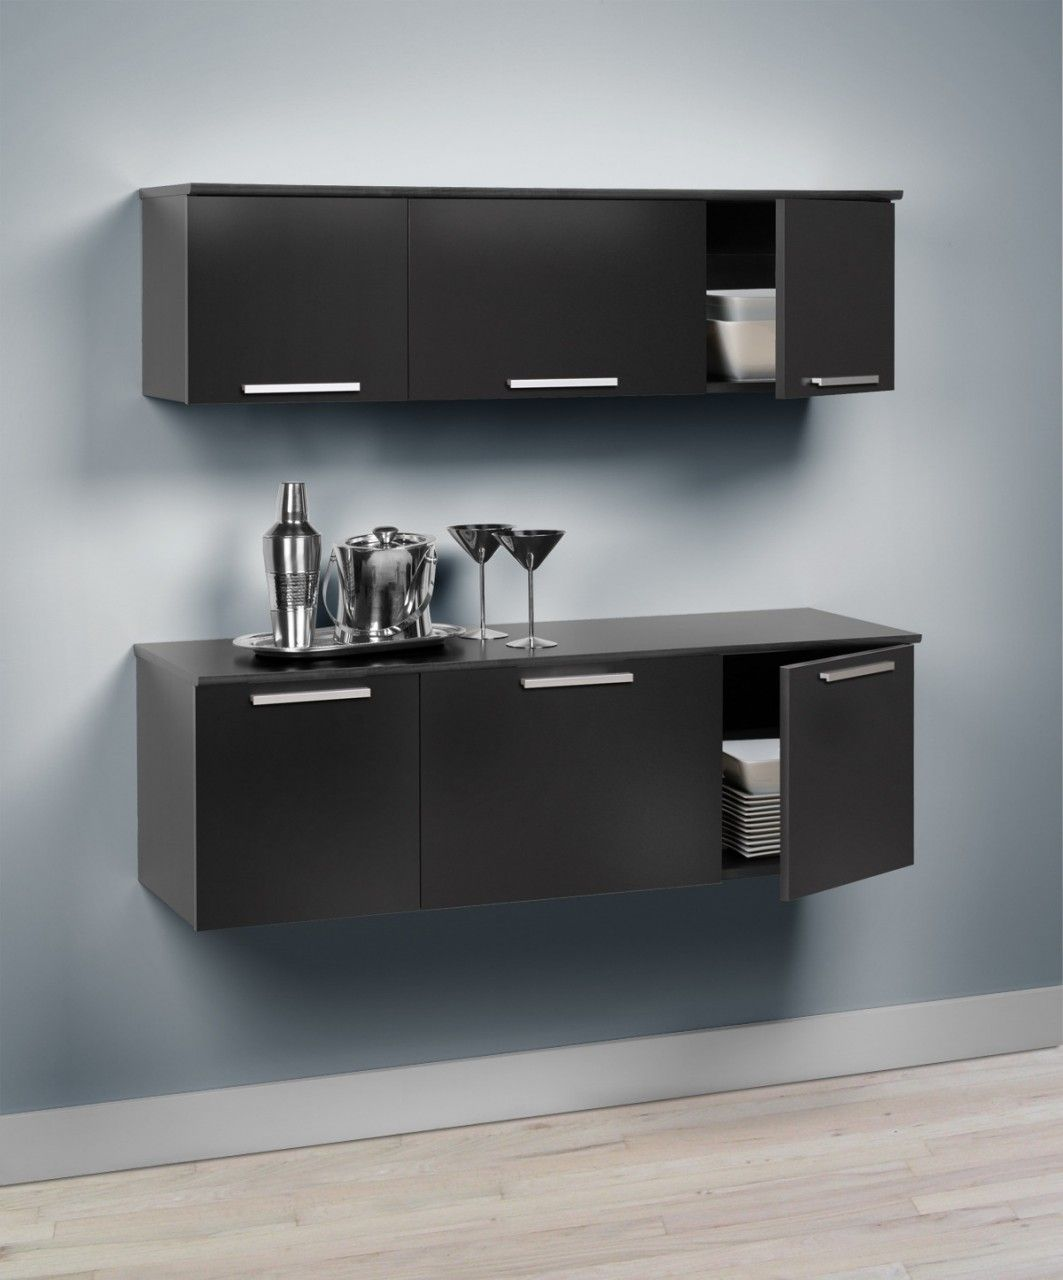 wall mounted office organizer system. cabinet storage wall mounted office organizer system l